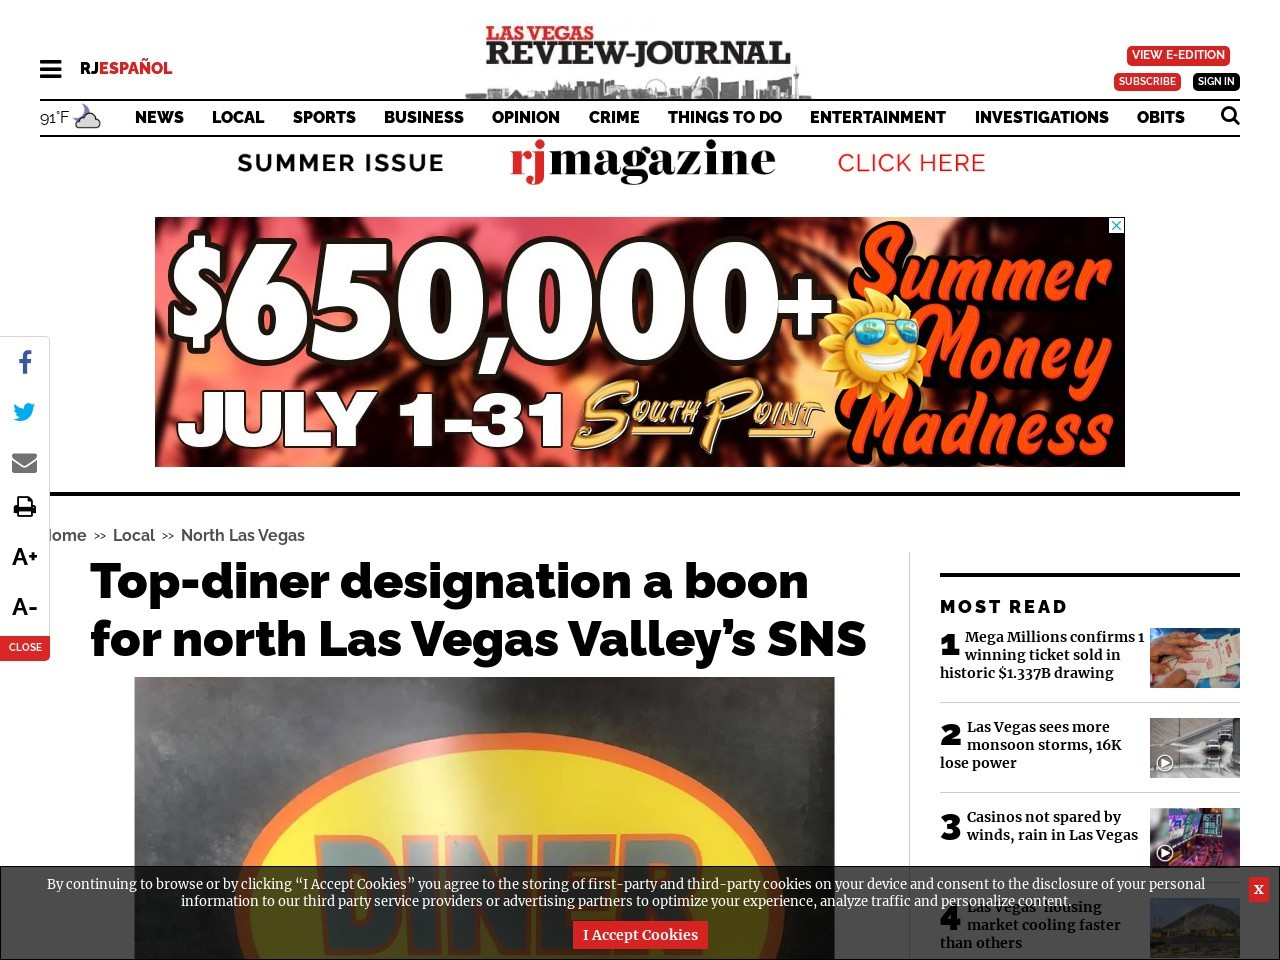 Top-diner designation a boon for north Las Vegas Valley's SNS